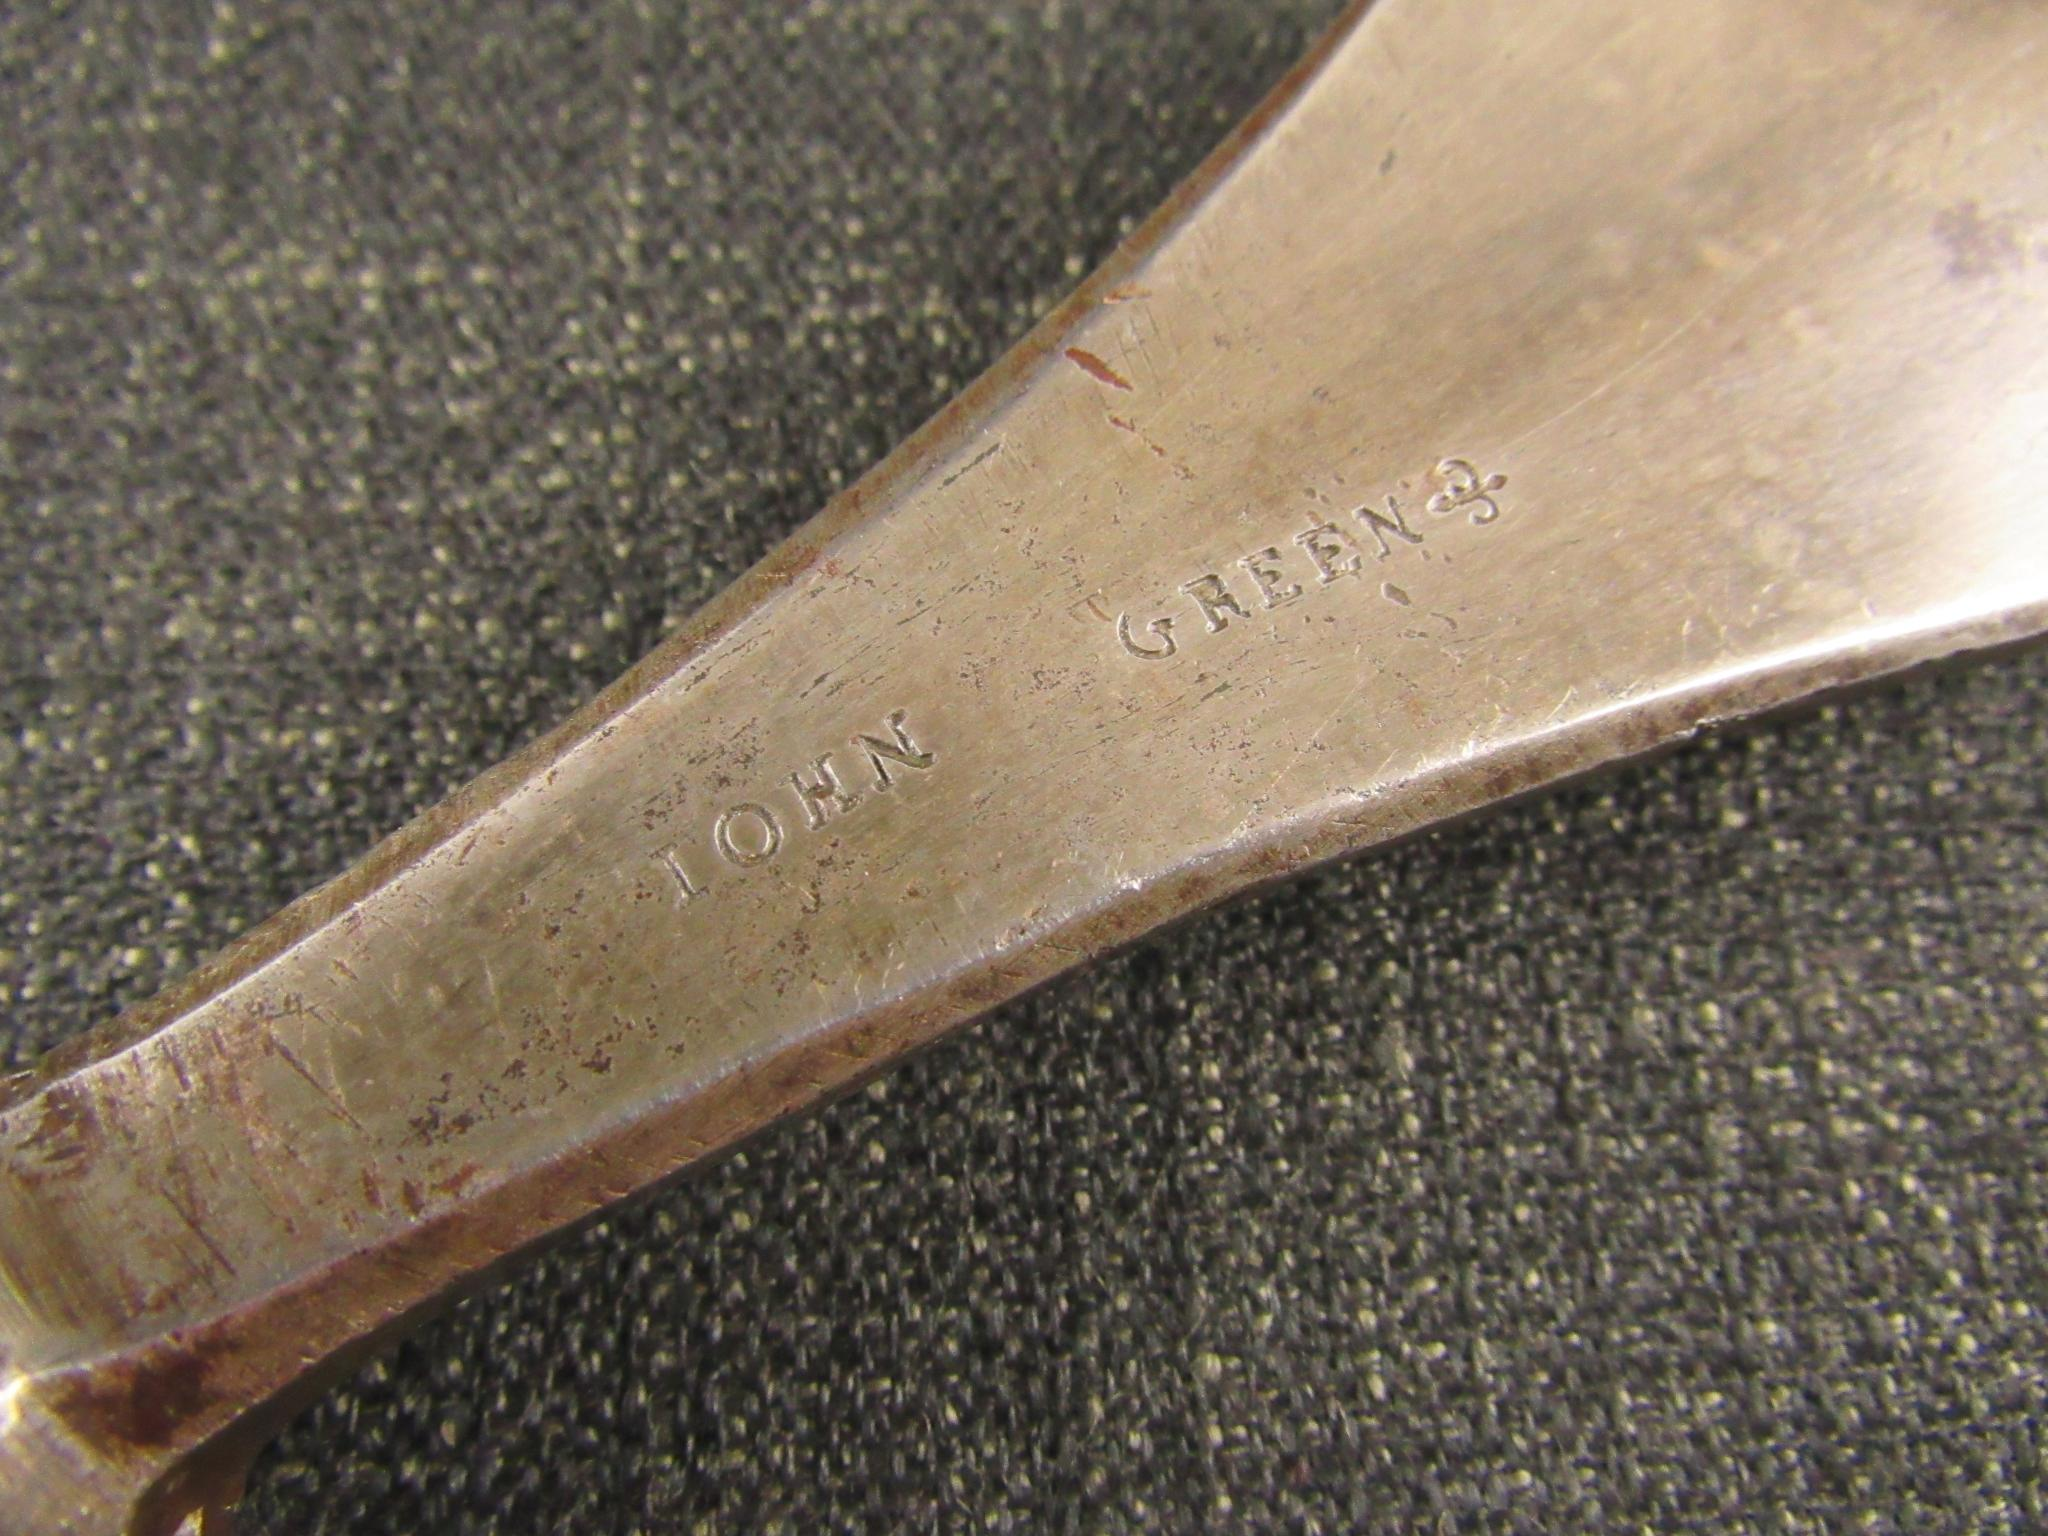 18th Century Chisel by John Green